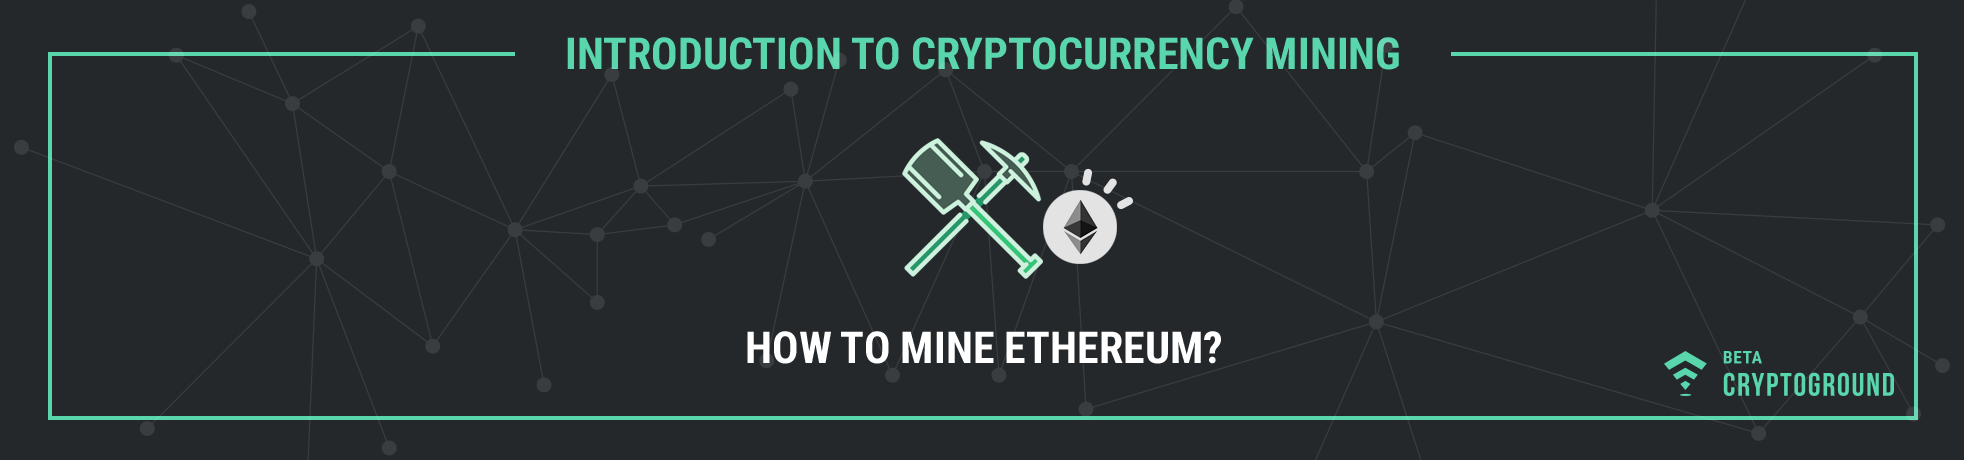 How to Mine Ethereum?